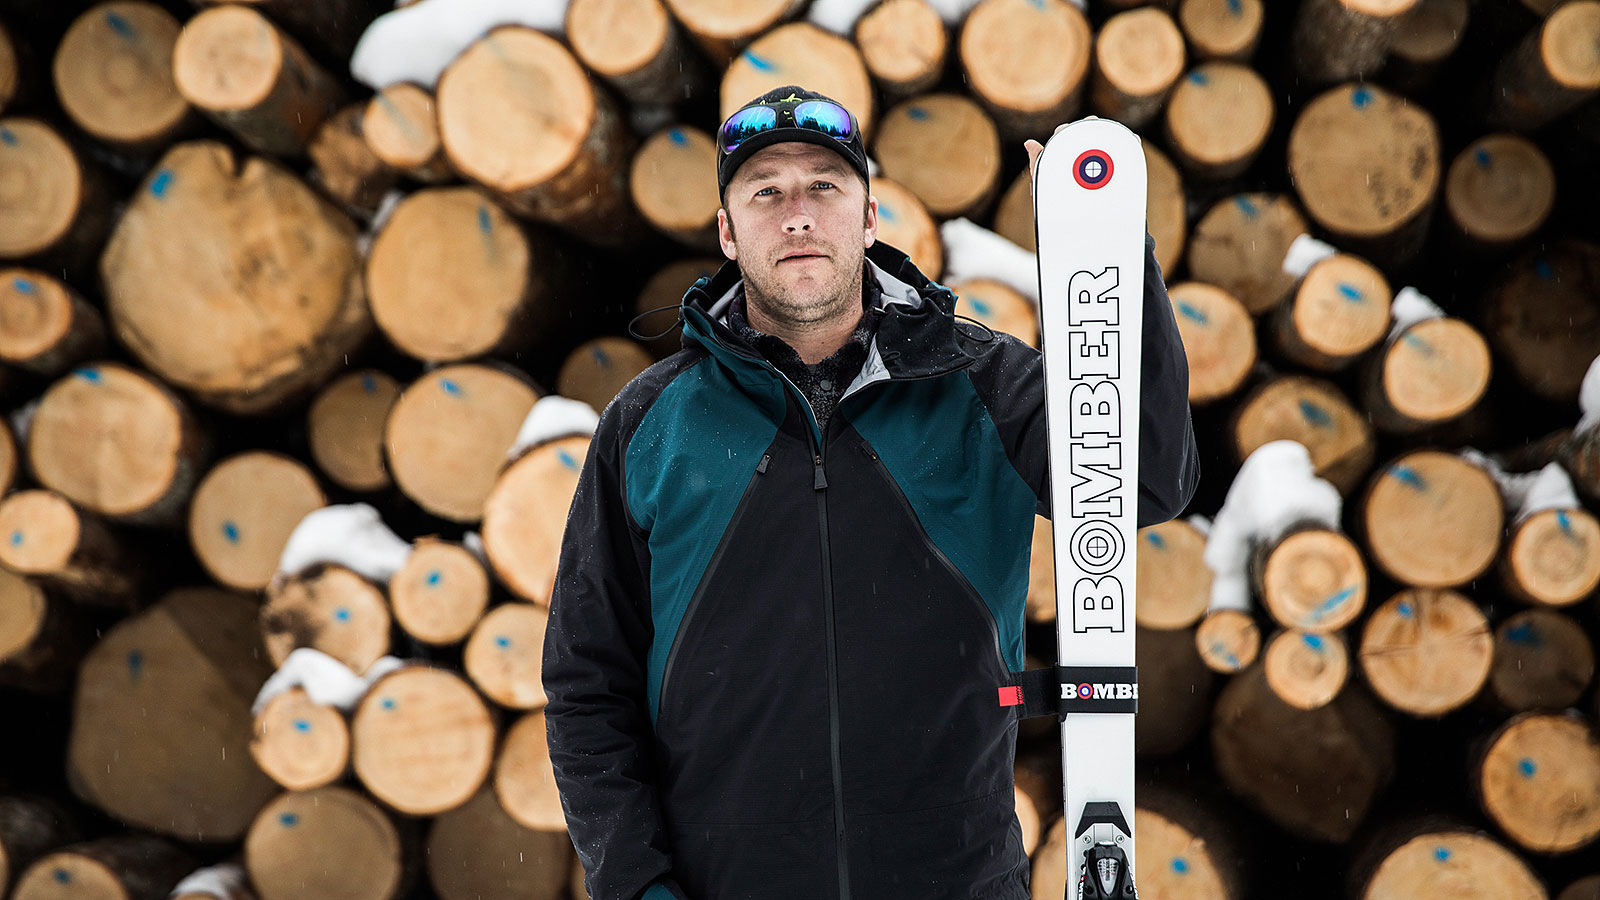 6-time Olympic medalist Bode Miller on learning to accept and understand fear in your career and life